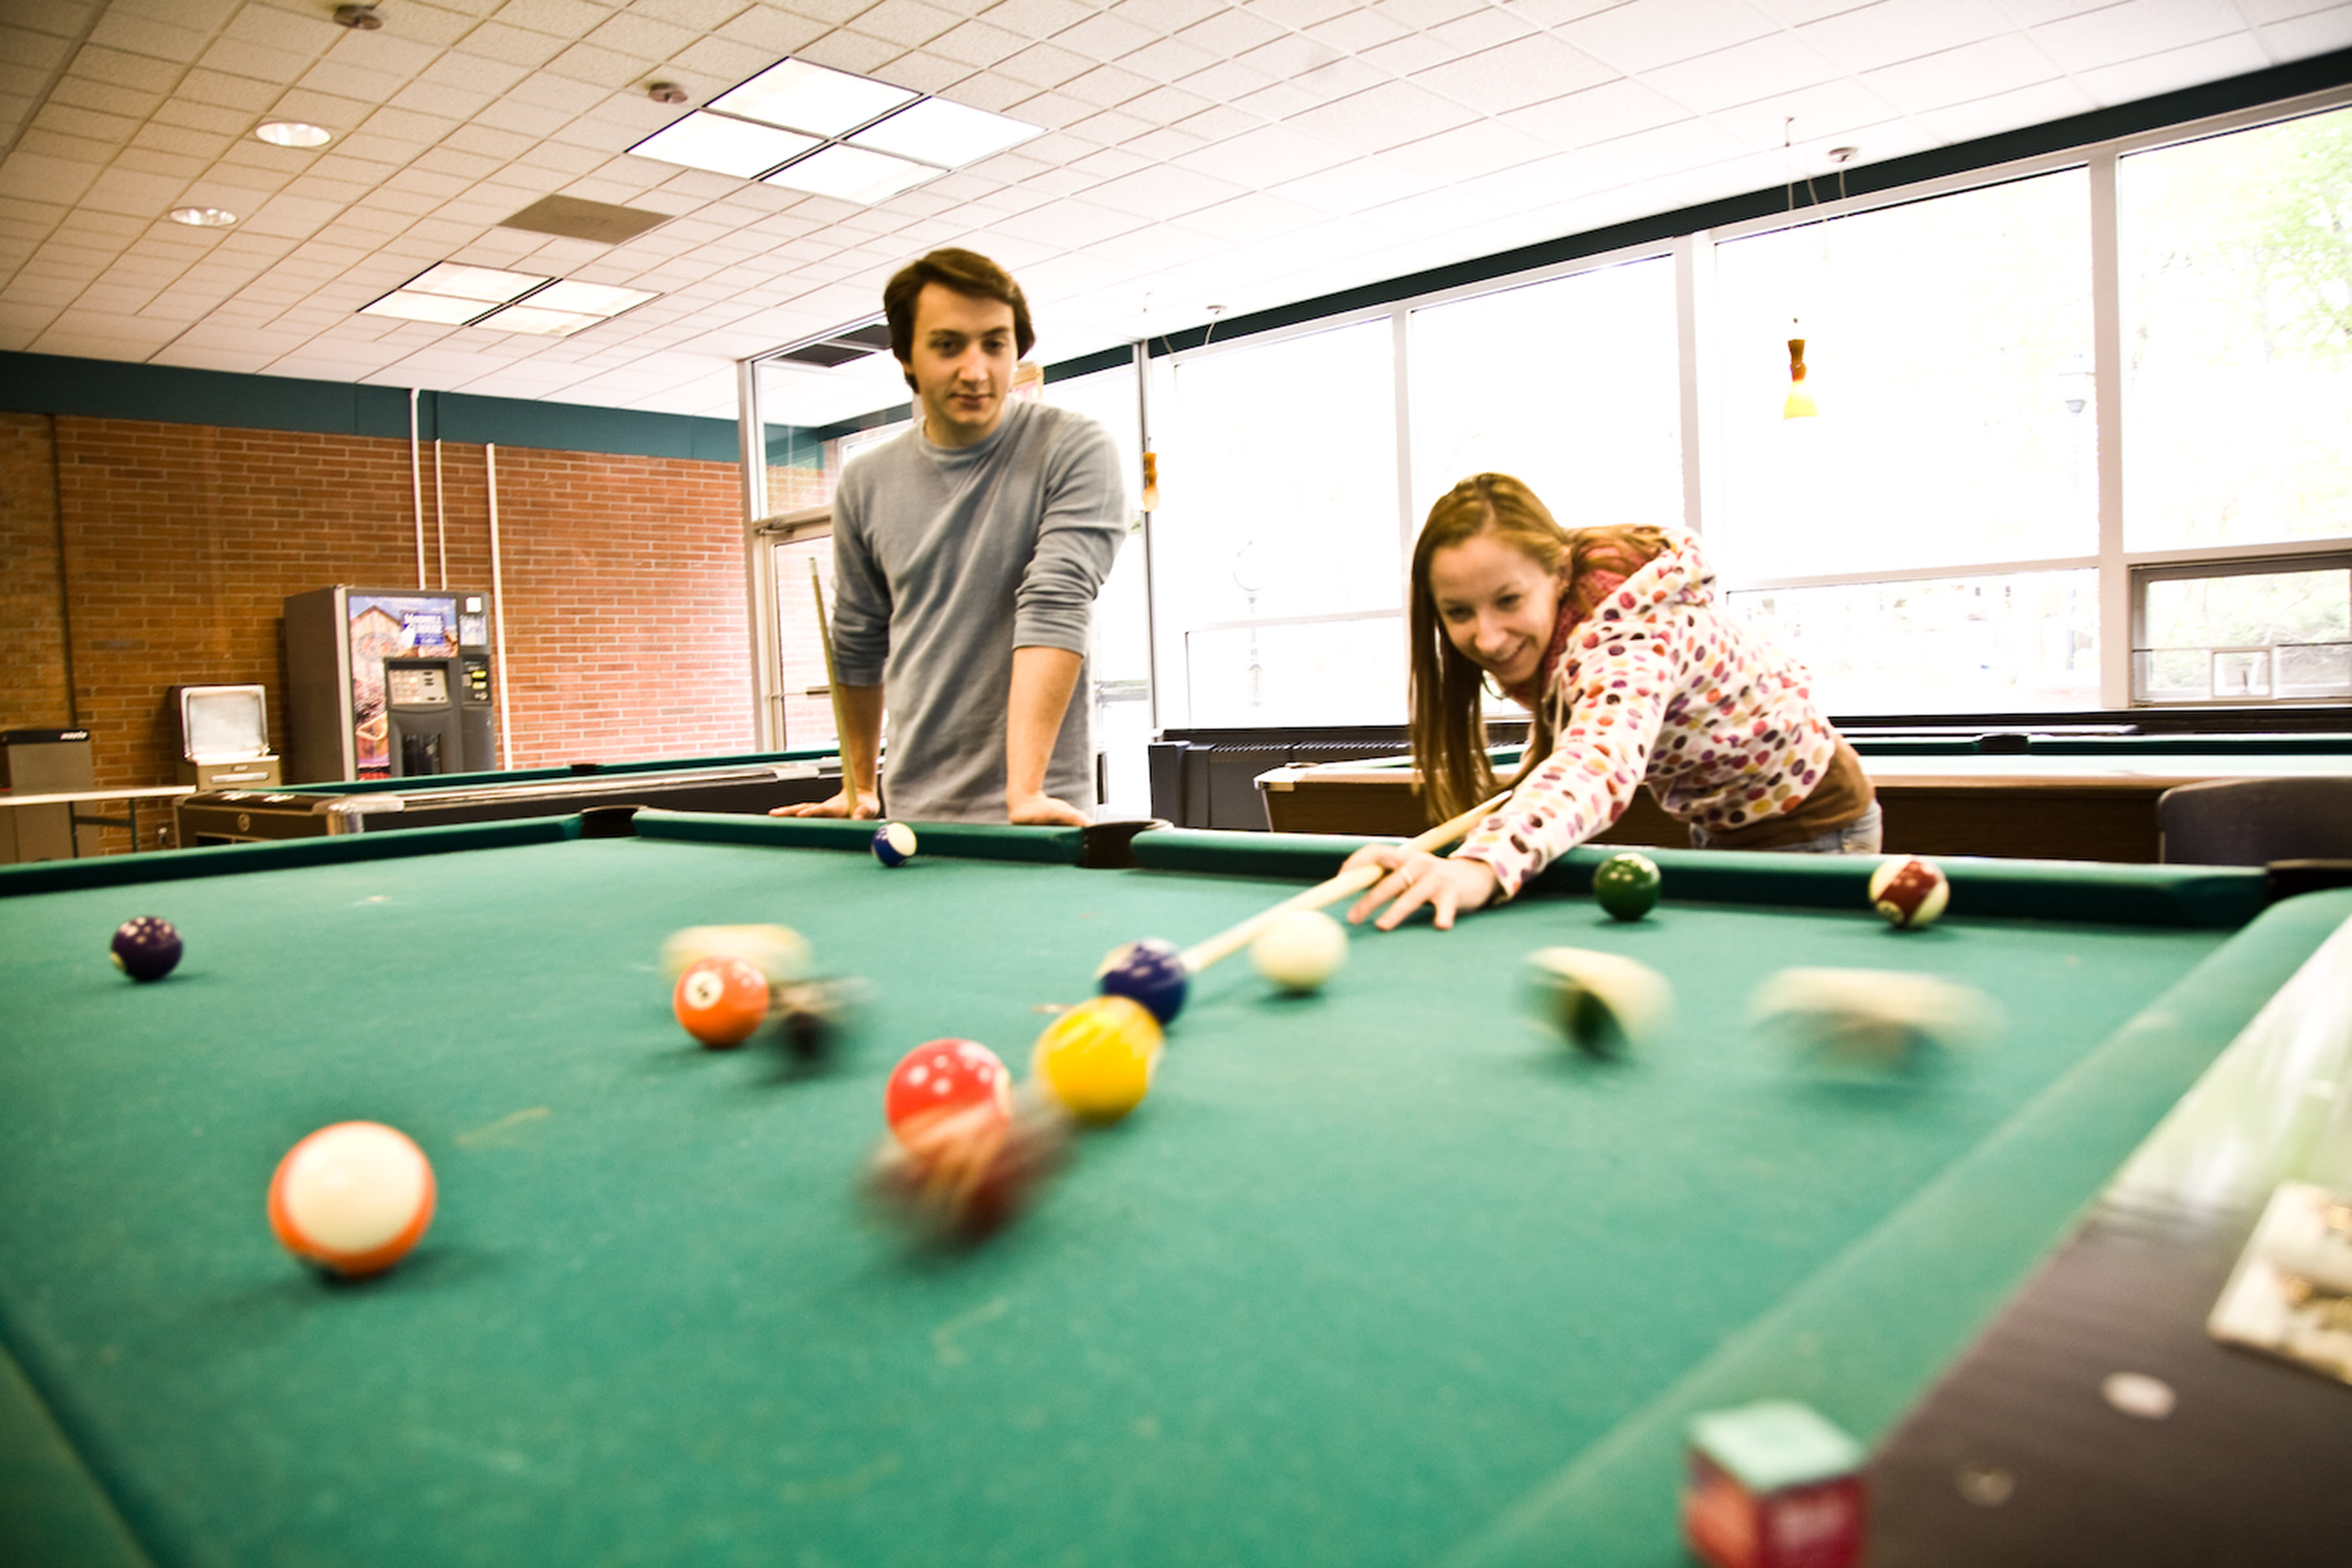 Shoot some pool at the Ehinger Center